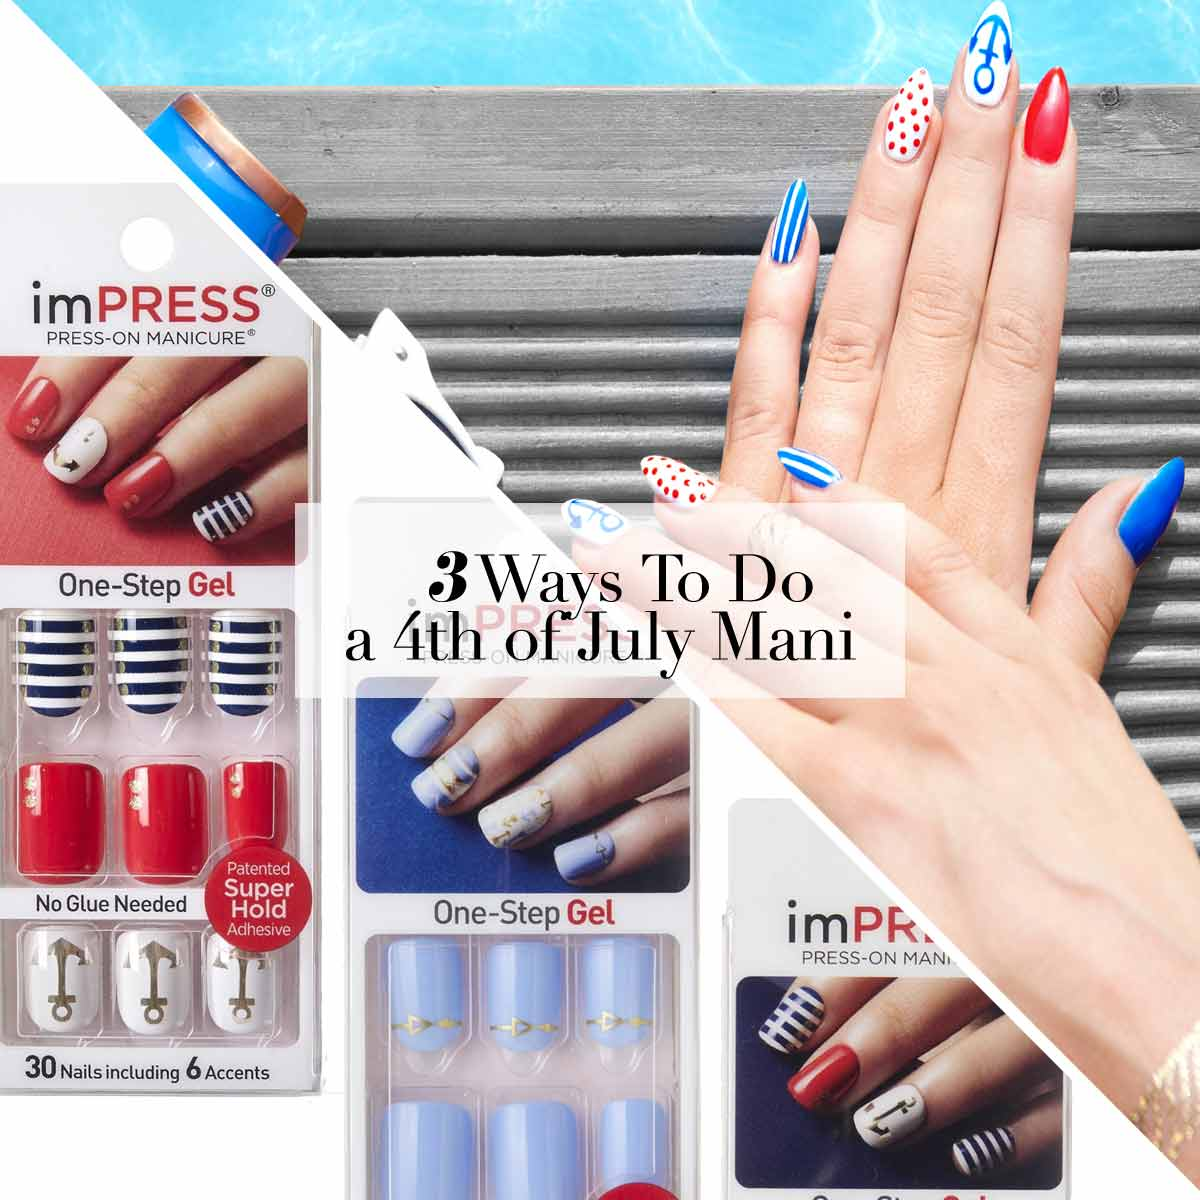 Do An Independent Mani This 4th of July!